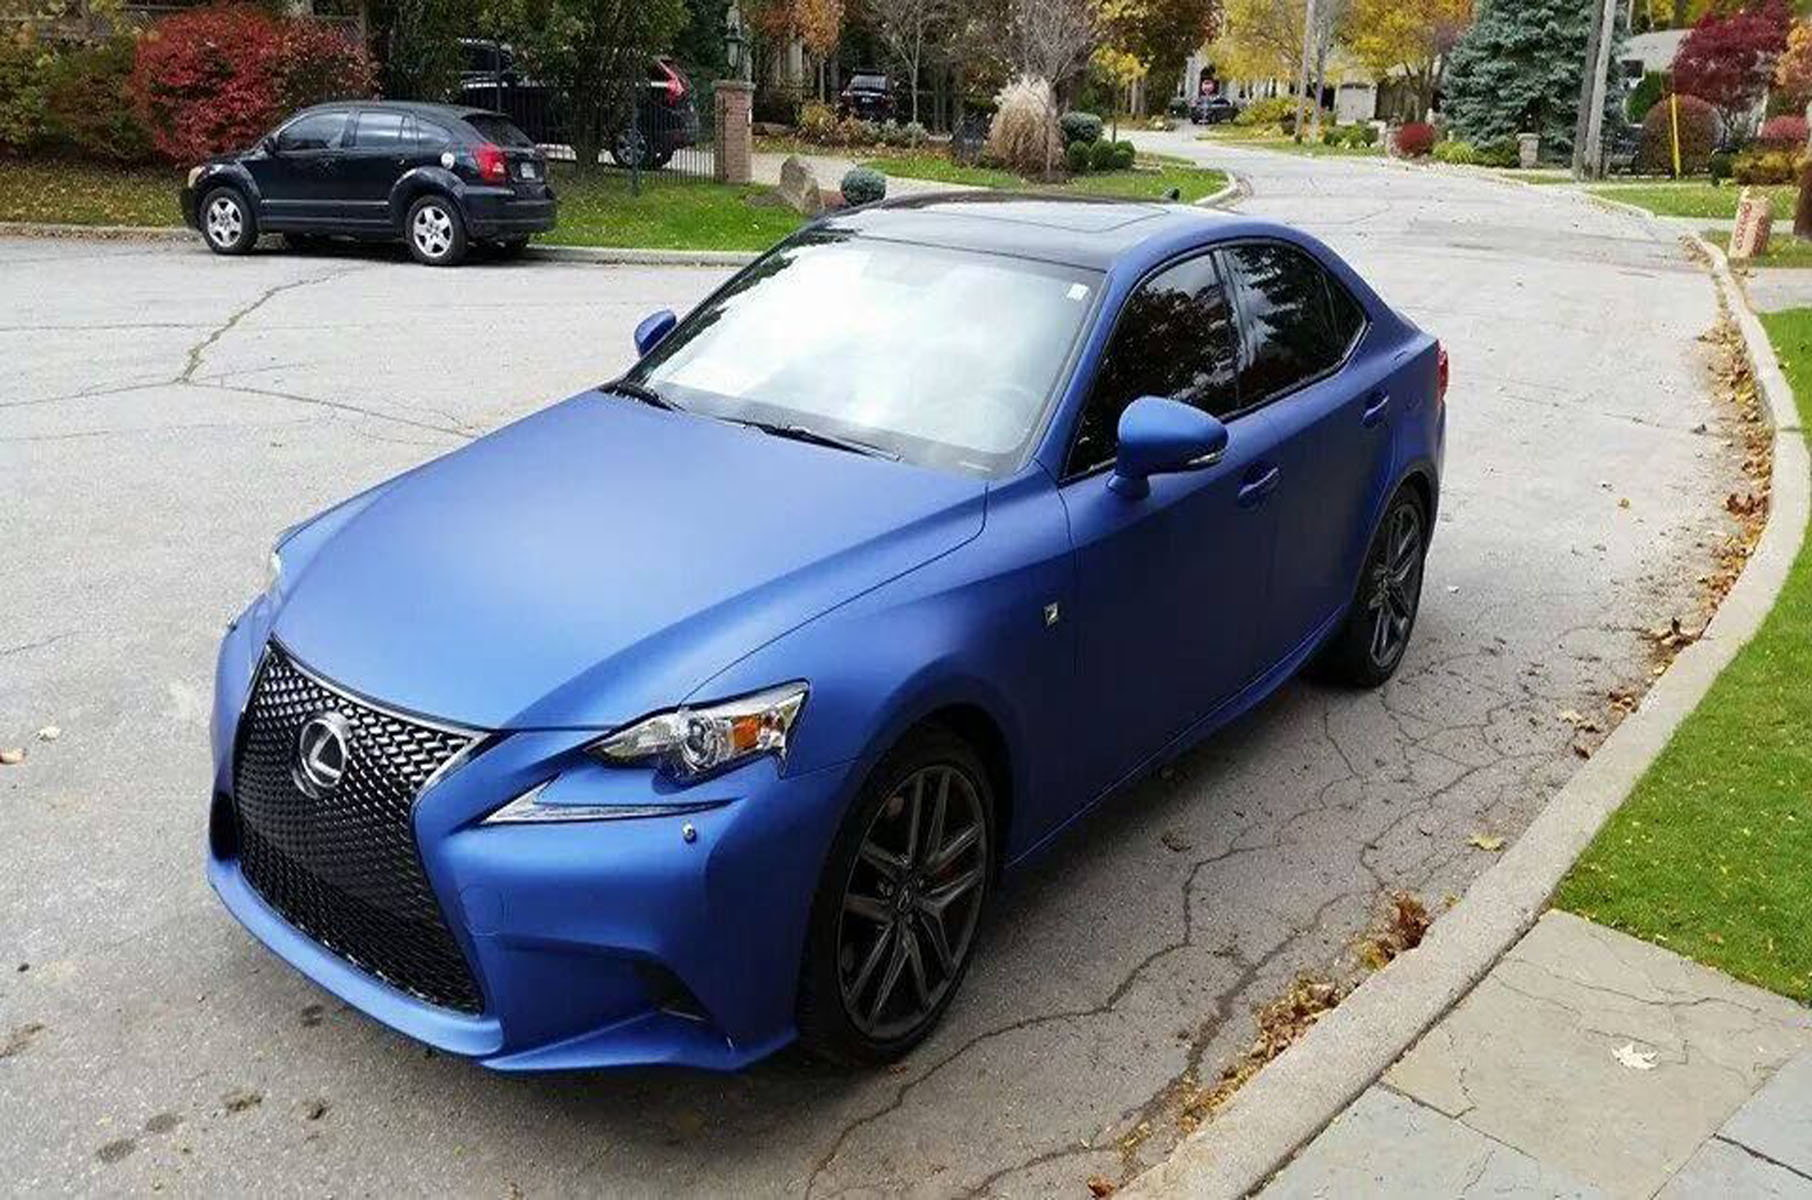 Car Wraps Cost >> Lexus Paint and Wrap Modifications - Clublexus